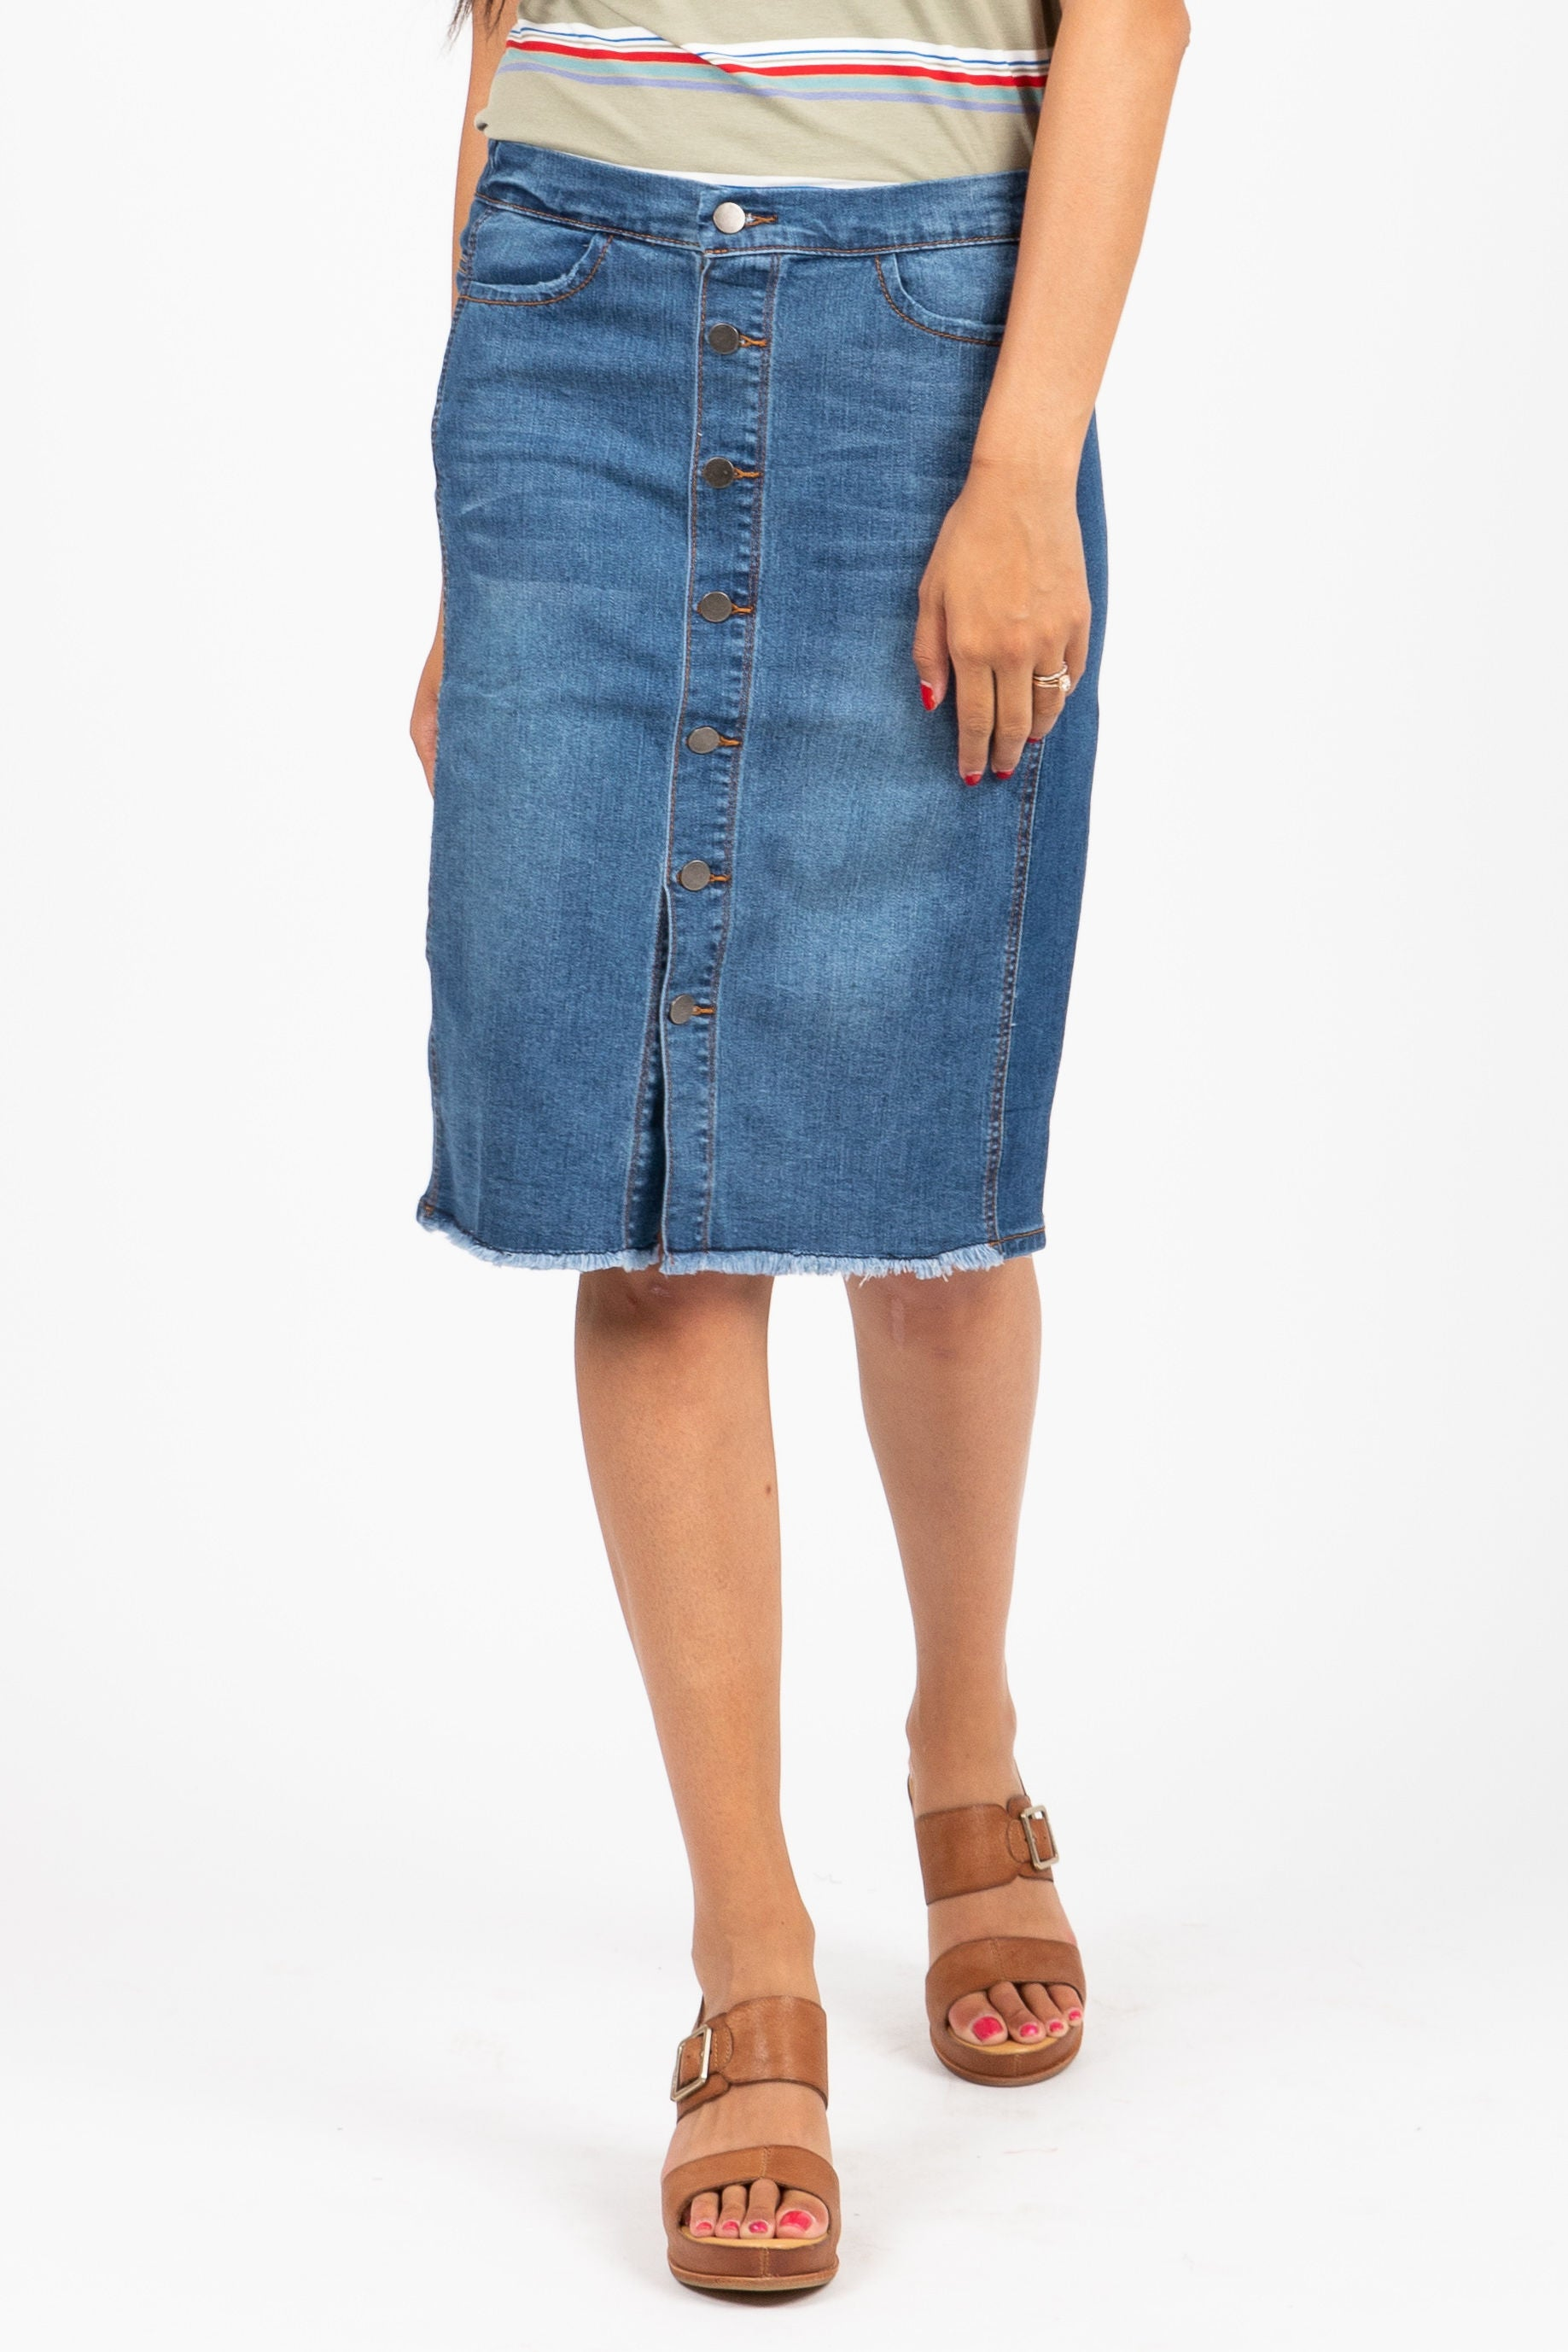 The Etched Denim Button Down Skirt